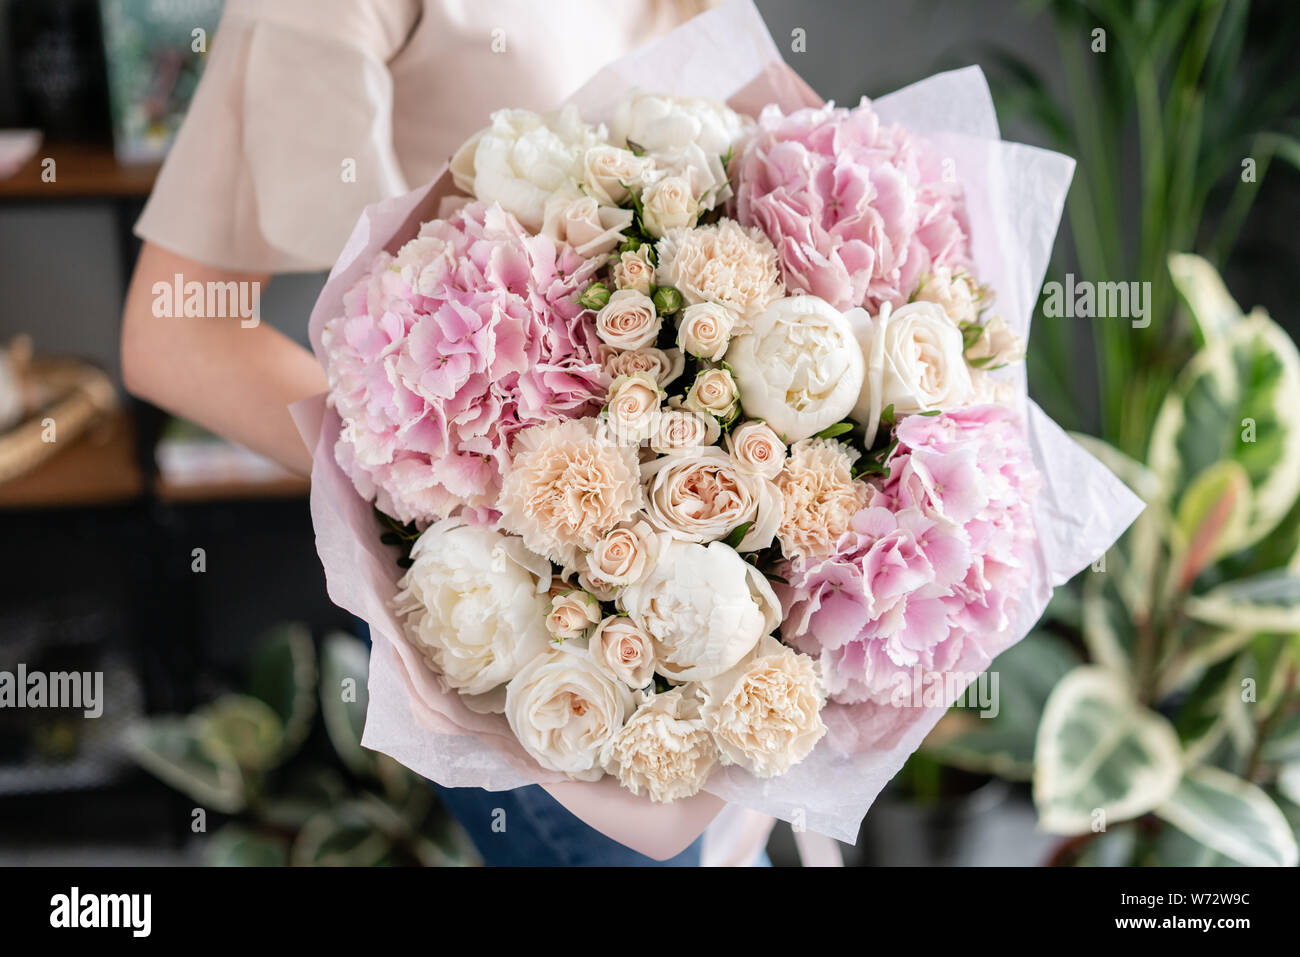 White Peonies And Pink Hydrangea Beautiful Bouquet Of Mixed Flowers In Woman Hand Floral Shop Concept Handsome Fresh Bouquet Flowers Delivery Stock Photo Alamy